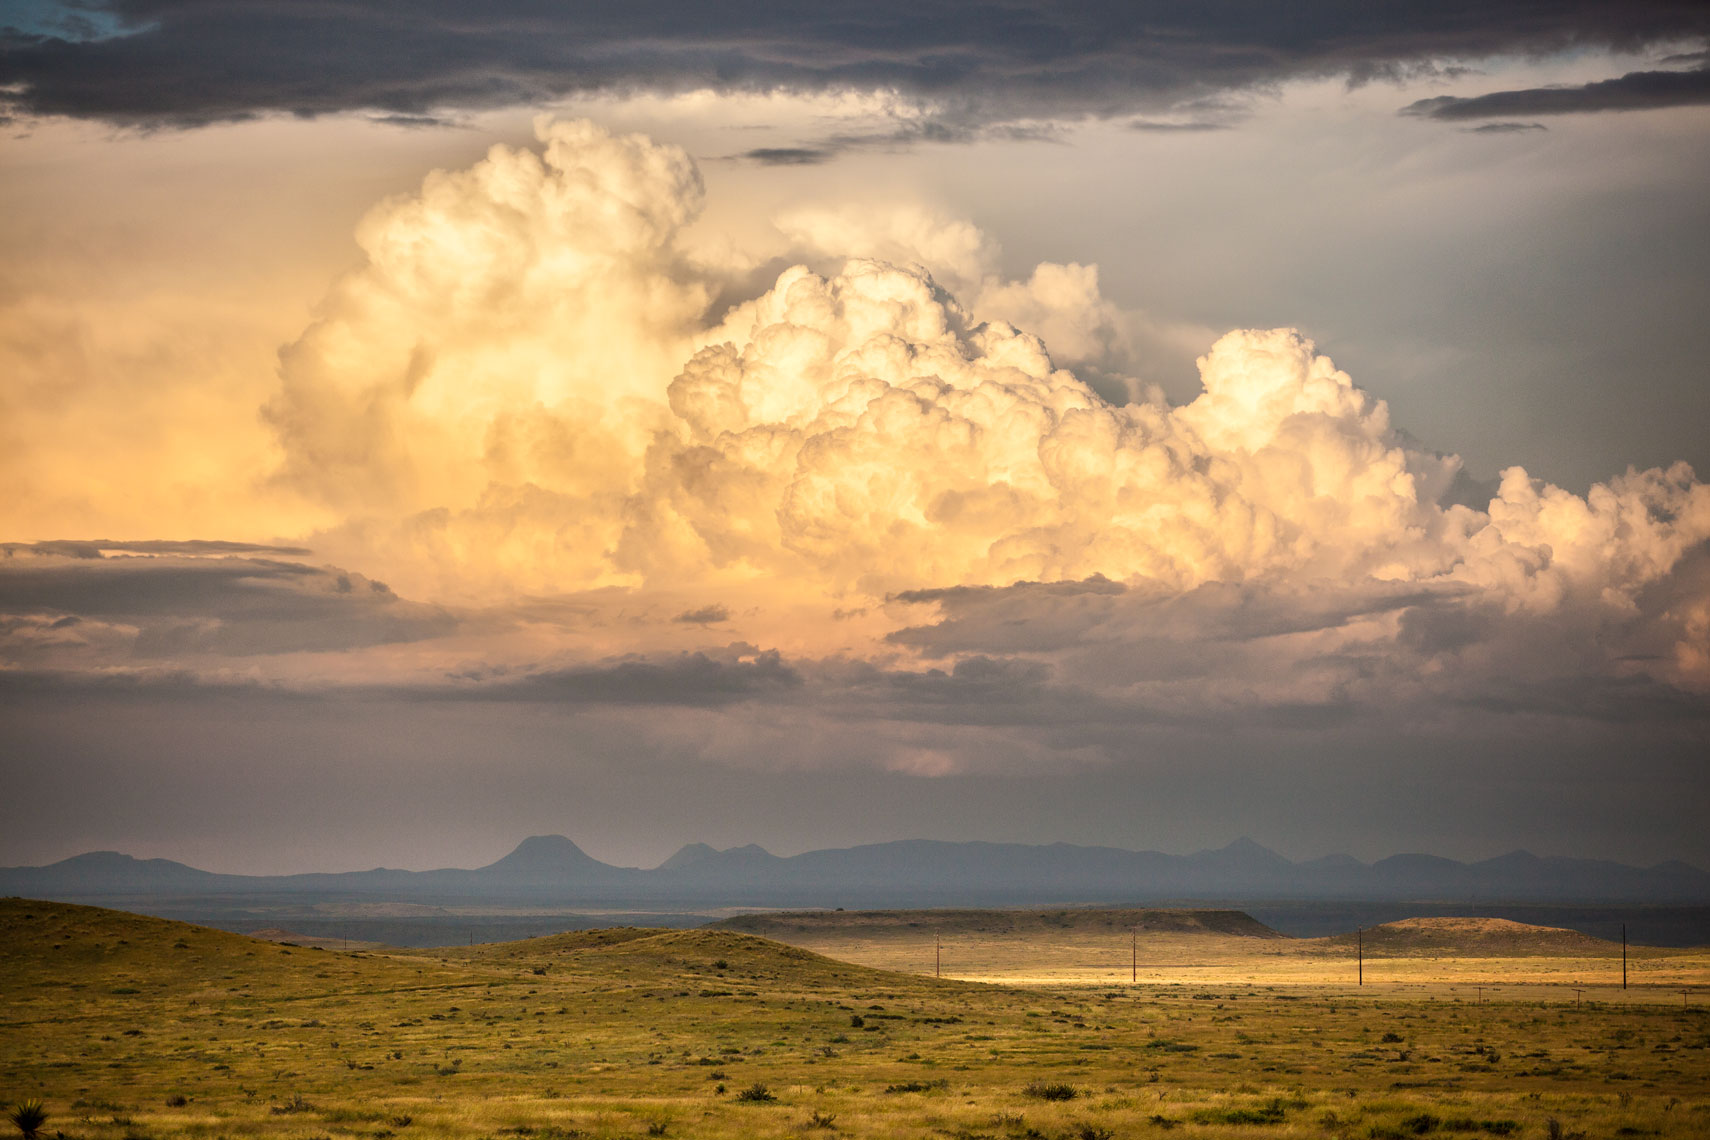 West Texas Landscape